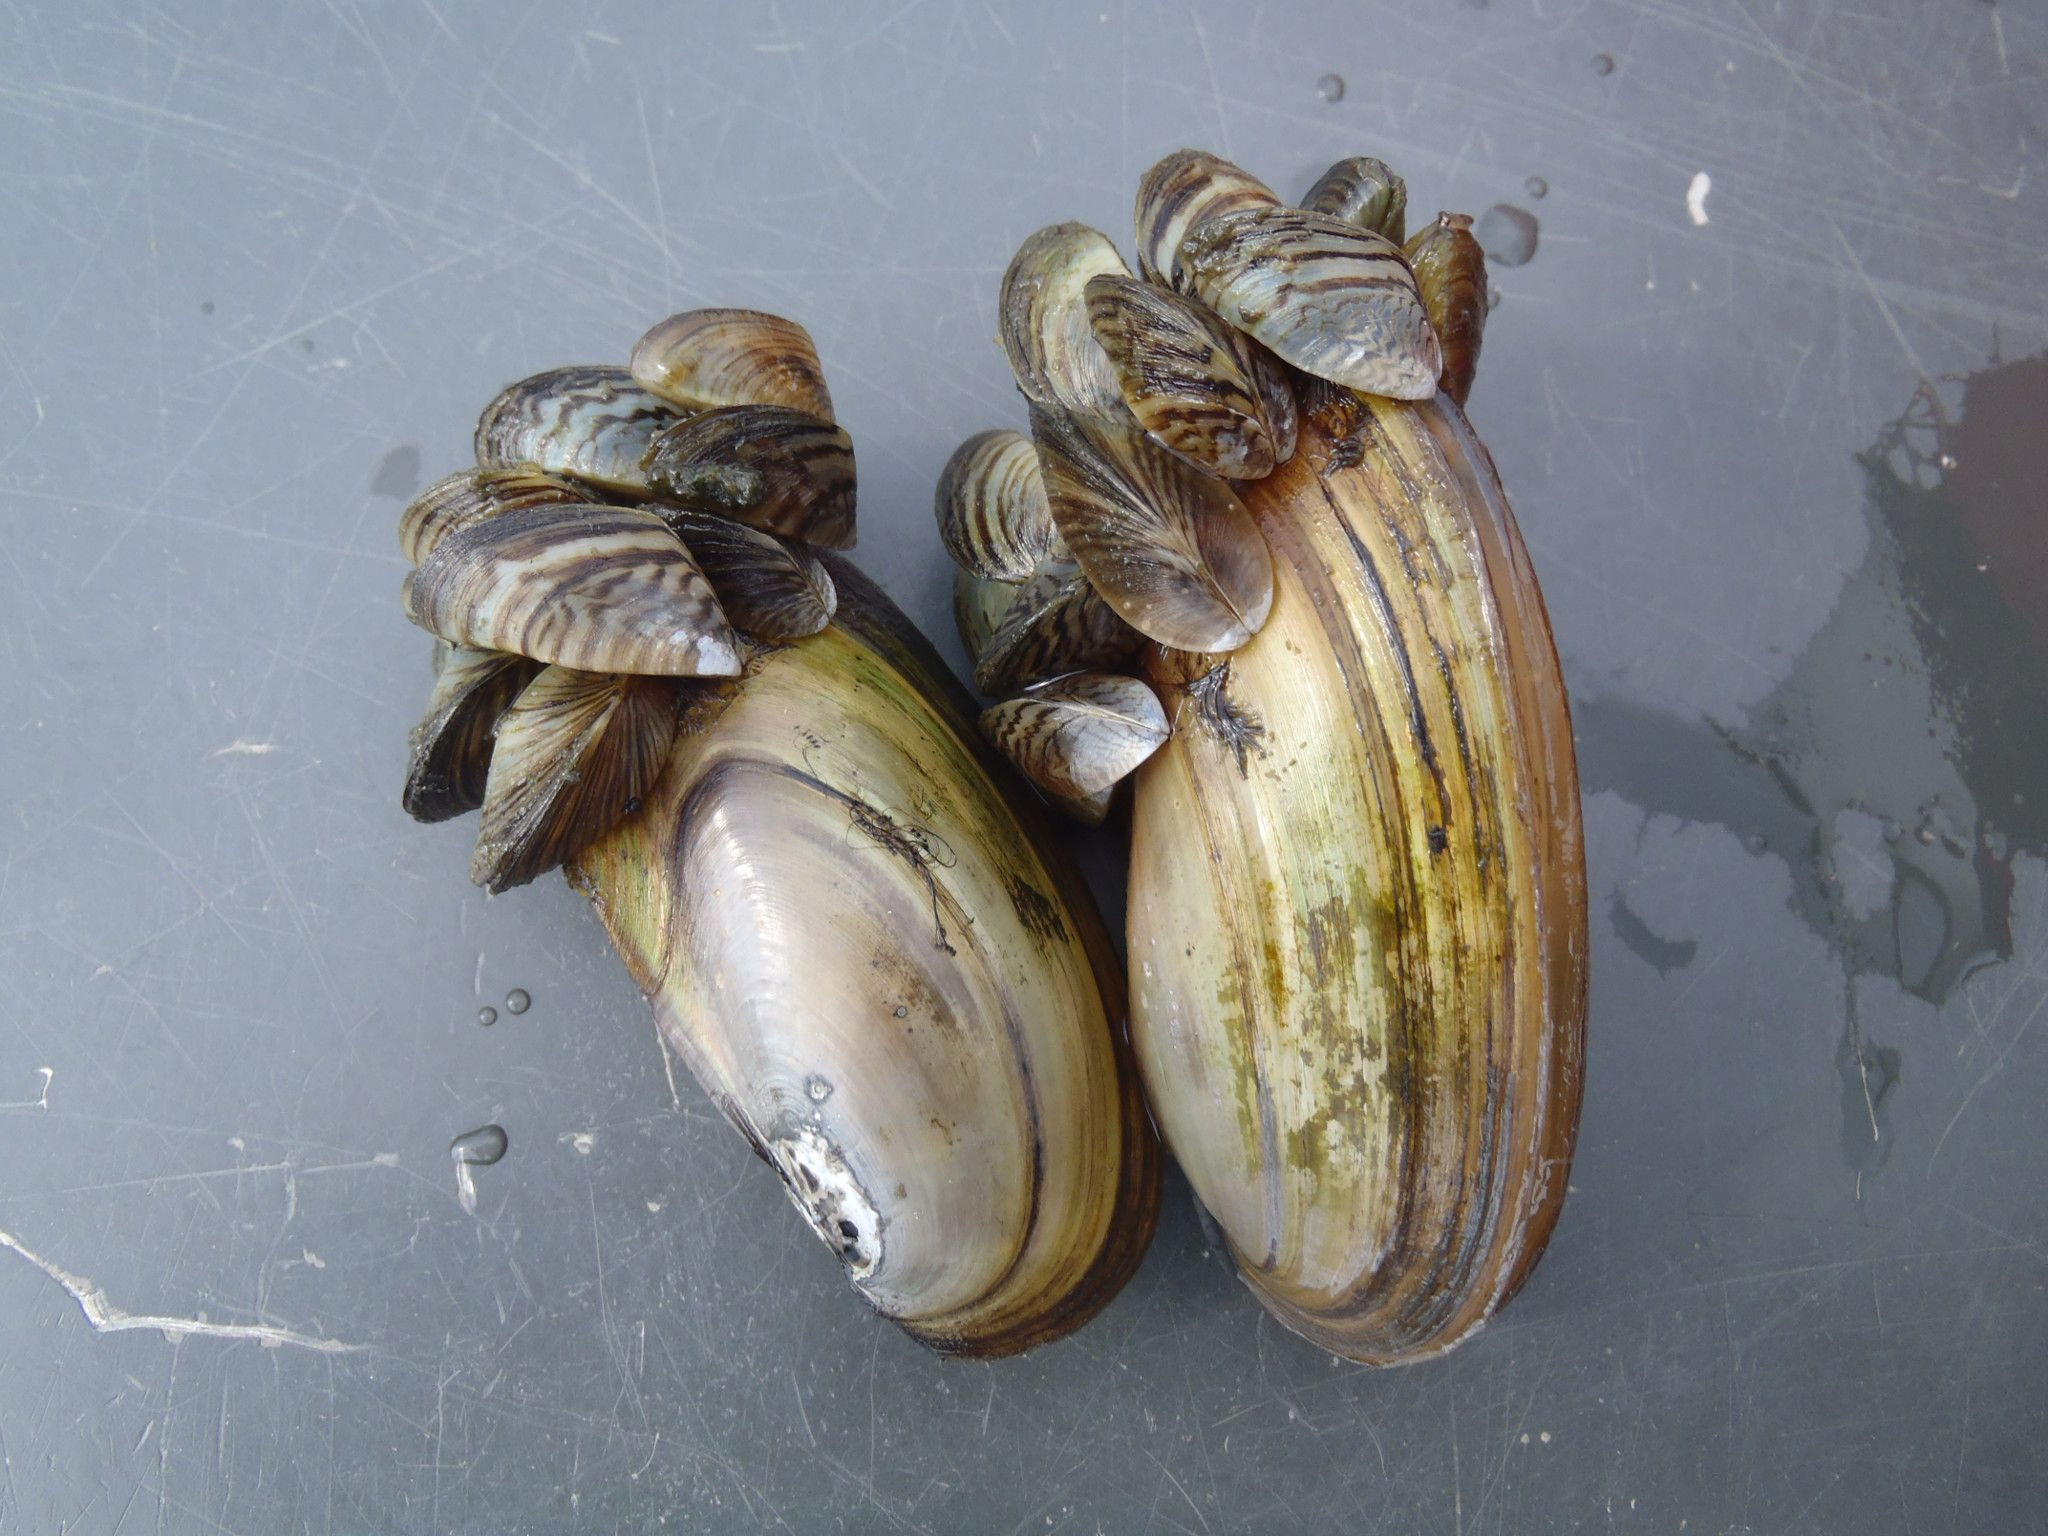 An image of mussels.